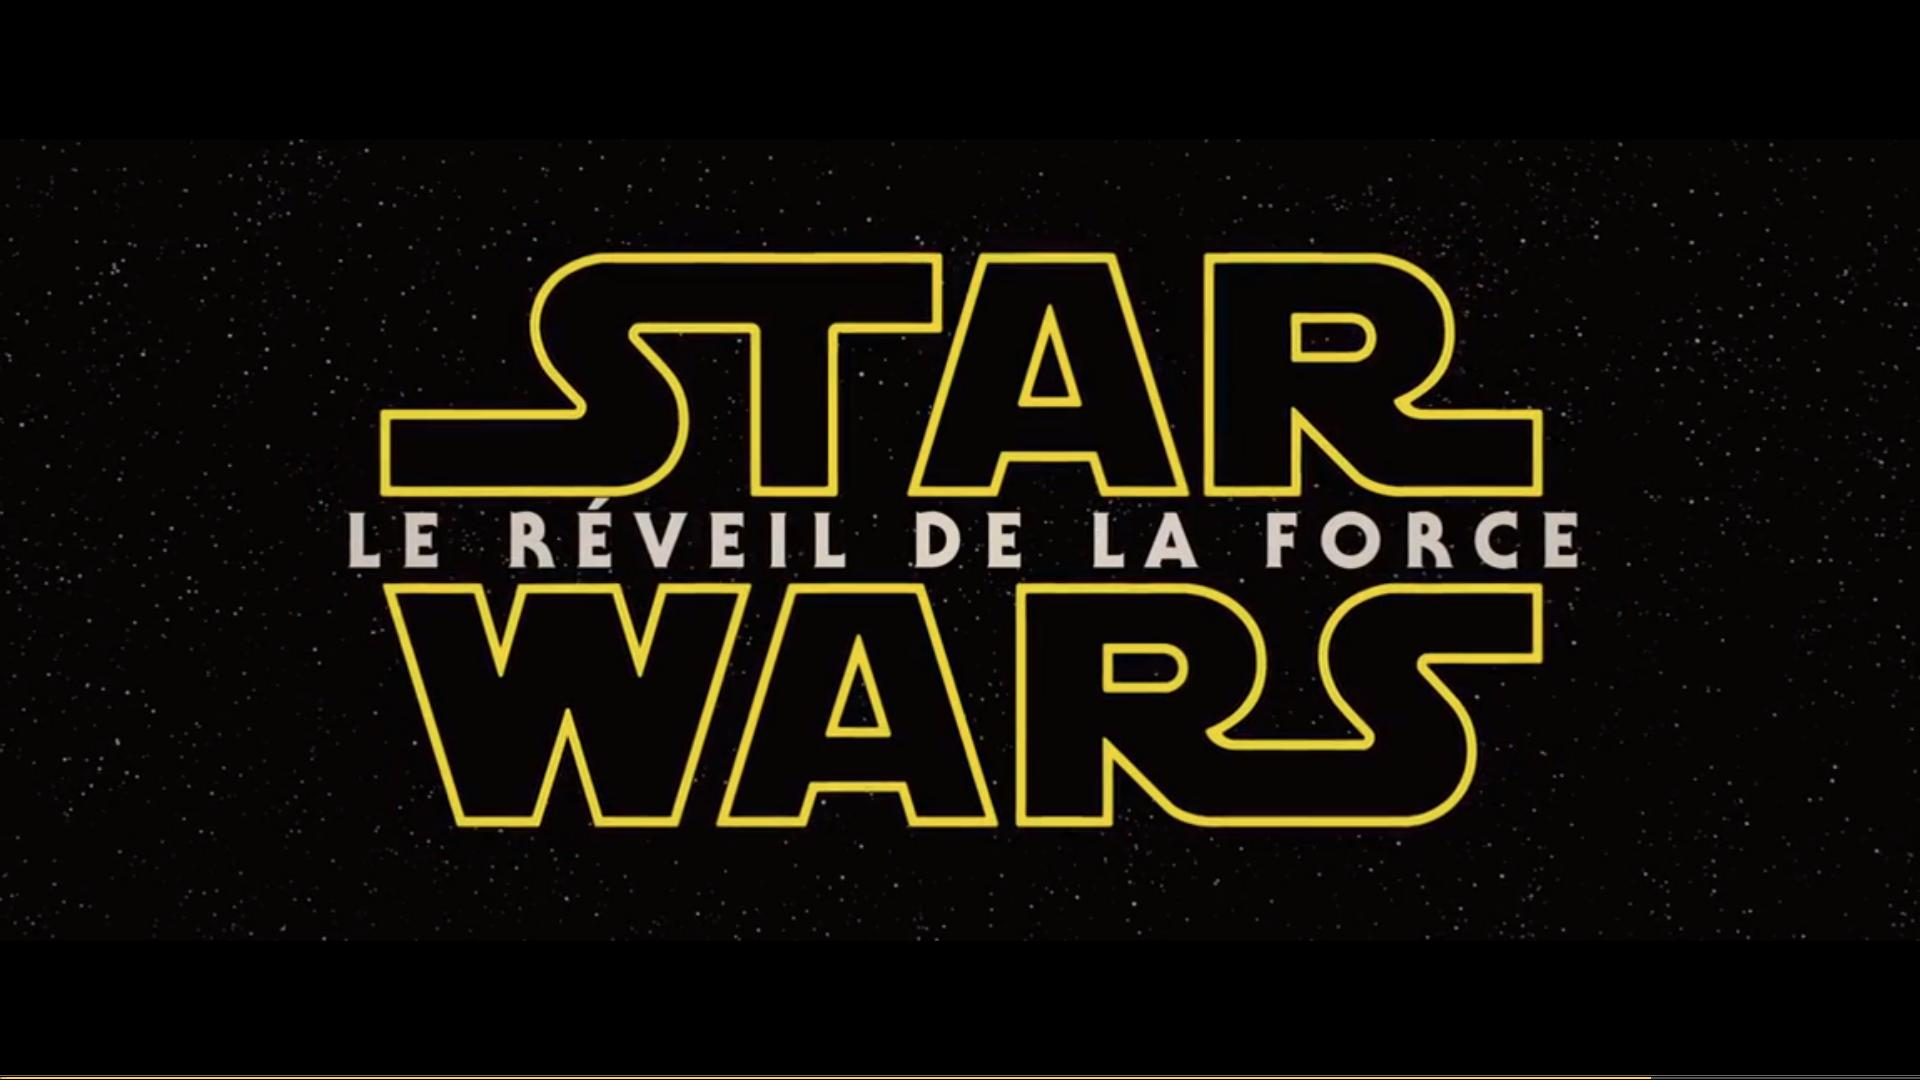 'Star Wars' An Art House Movie? Some French Exhibs Think So, Stoking Indie Producers' Ire